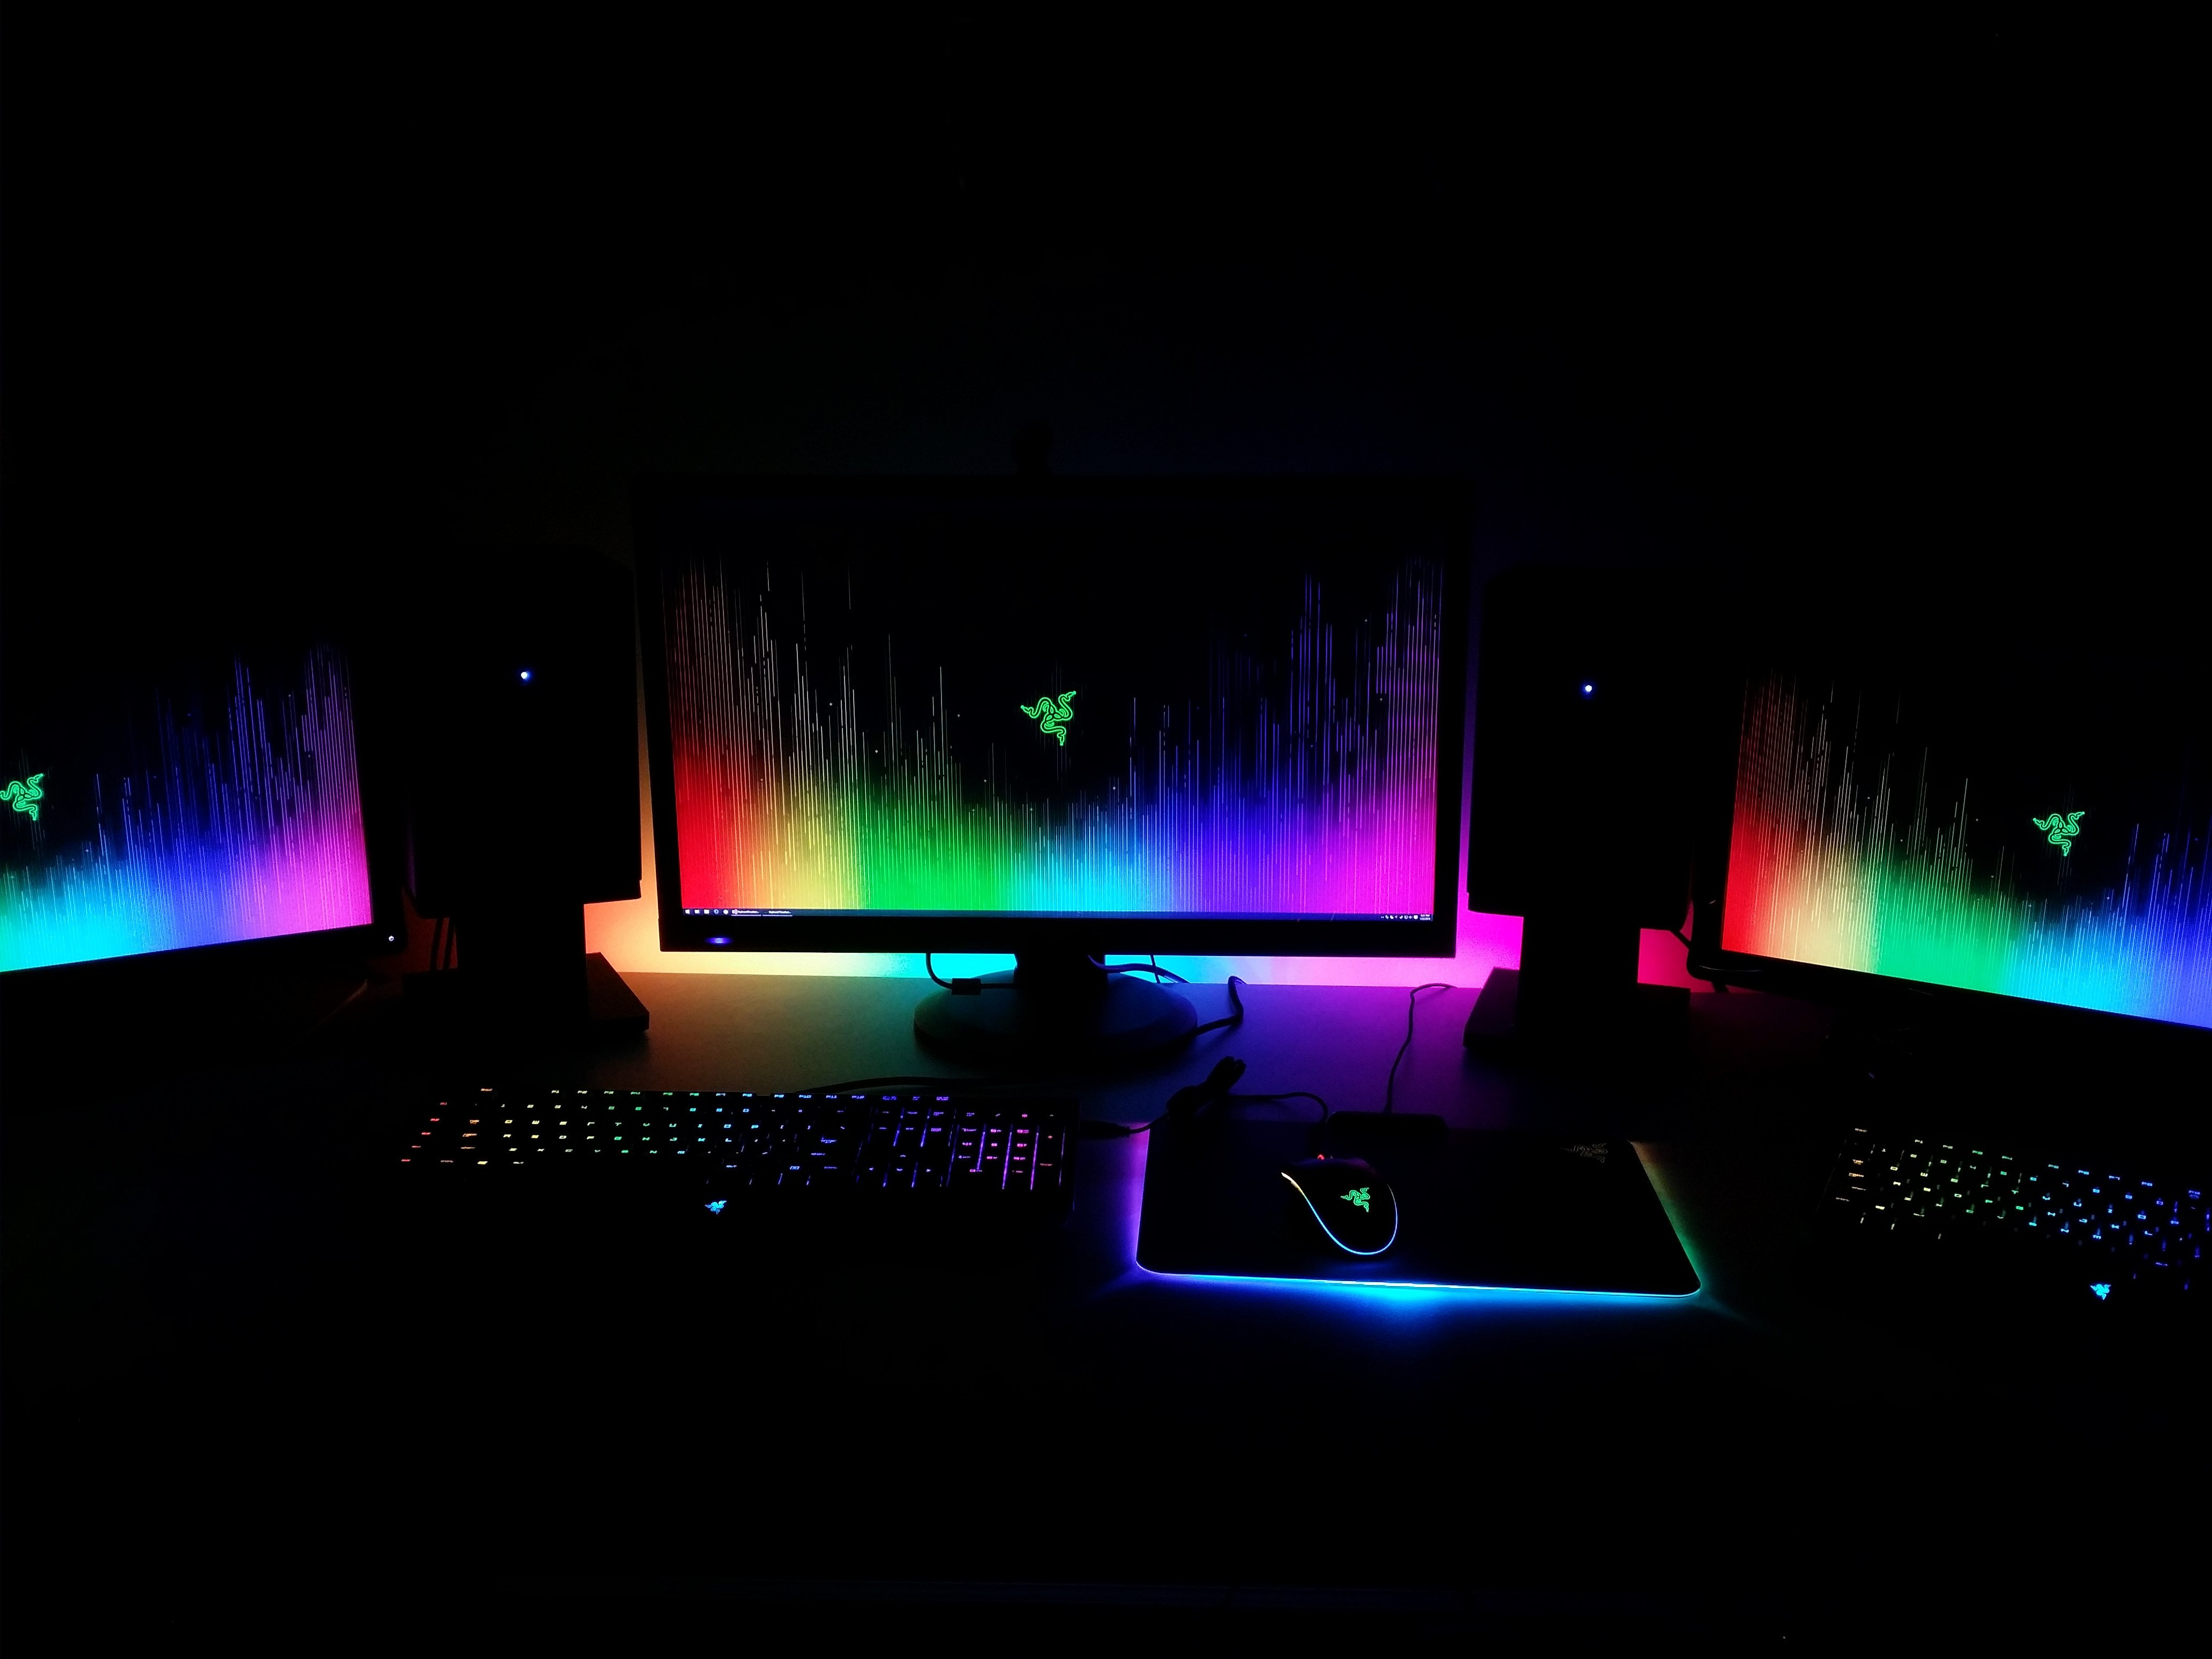 Heres my Chroma setup to go along with the new wallpaper razer 4128x3096